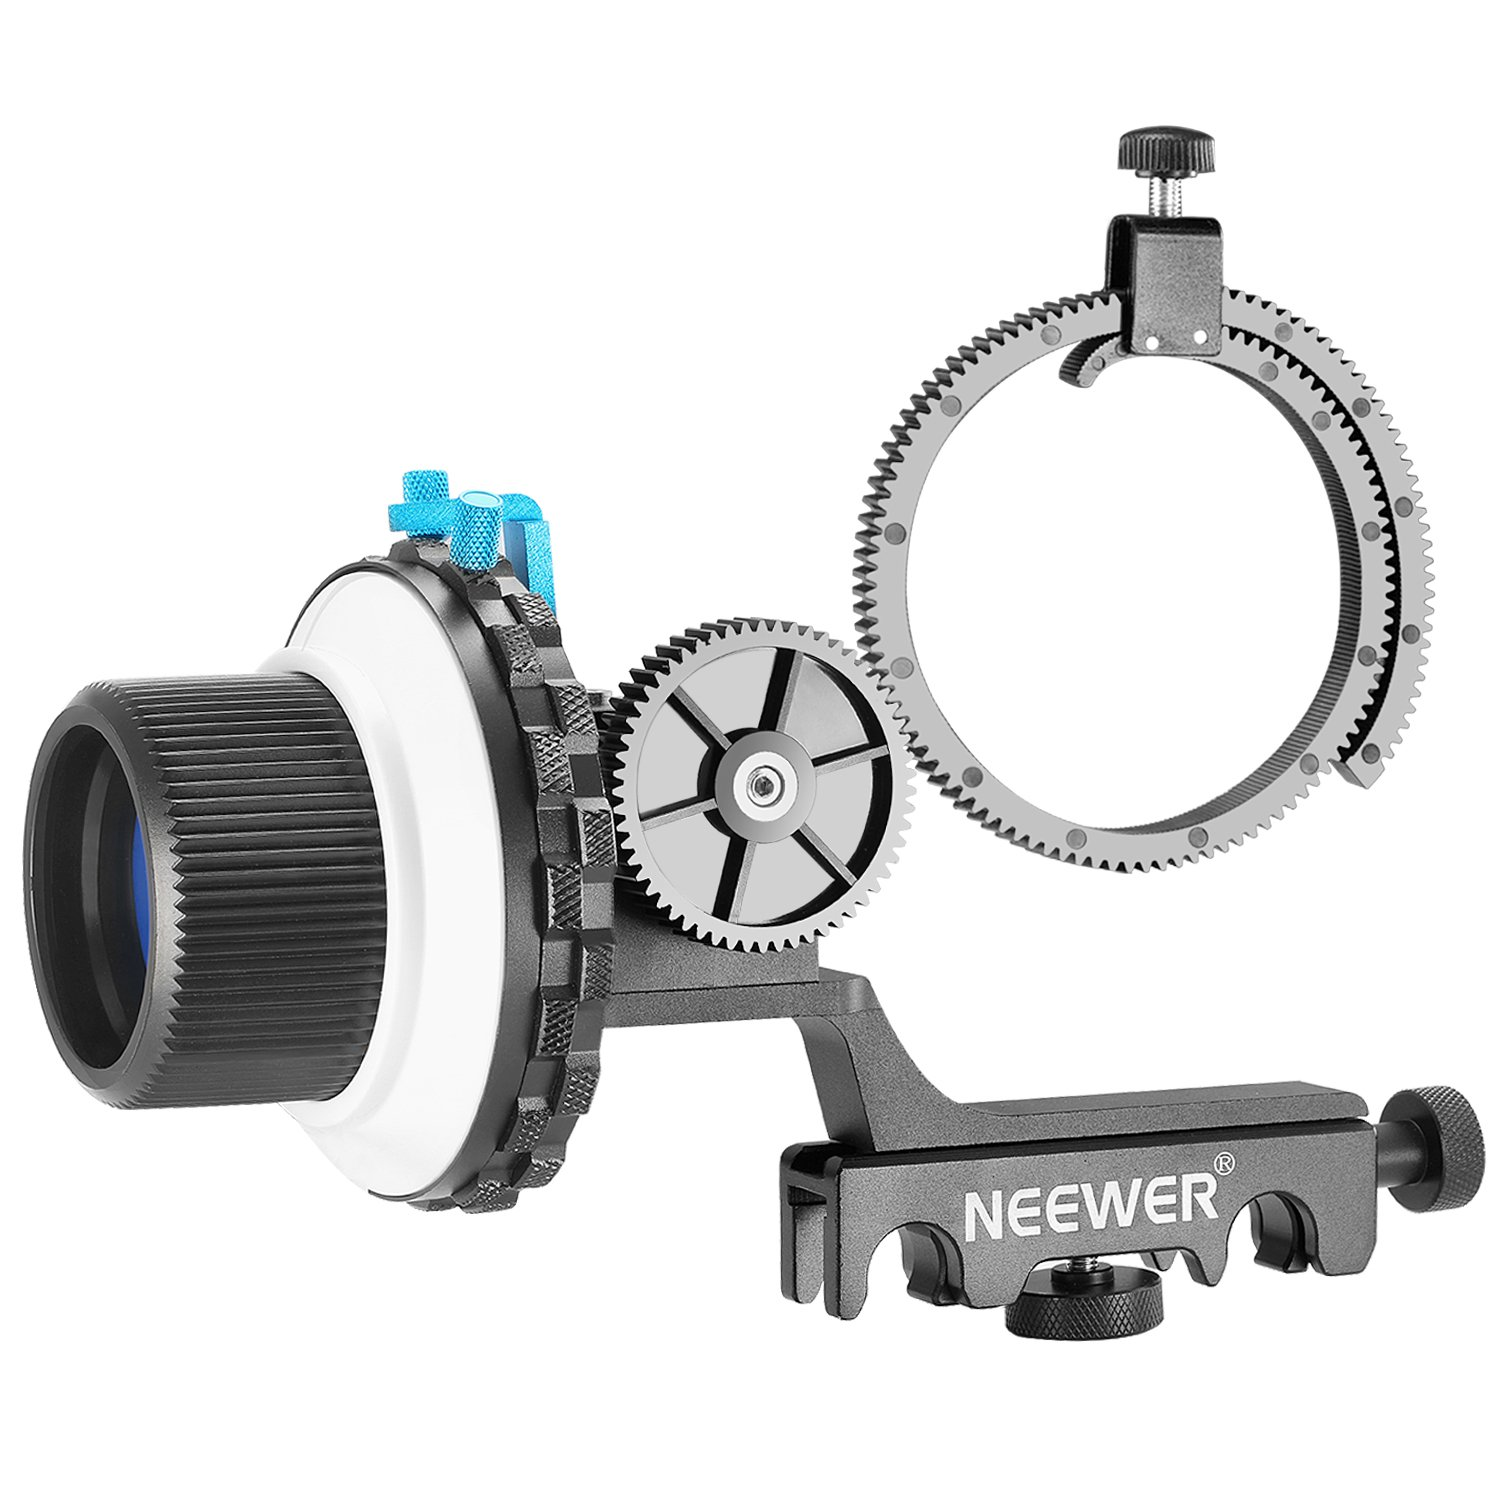 Neewer® A-B Stop Follow Focus with Quick Release and Gear Ring Belt Mount for DSLR Cameras Camcorder, Fits Shoulder Supports, Stabilizers, Movie Rigs, All 15mm Rod Mounts 10086928@@##1